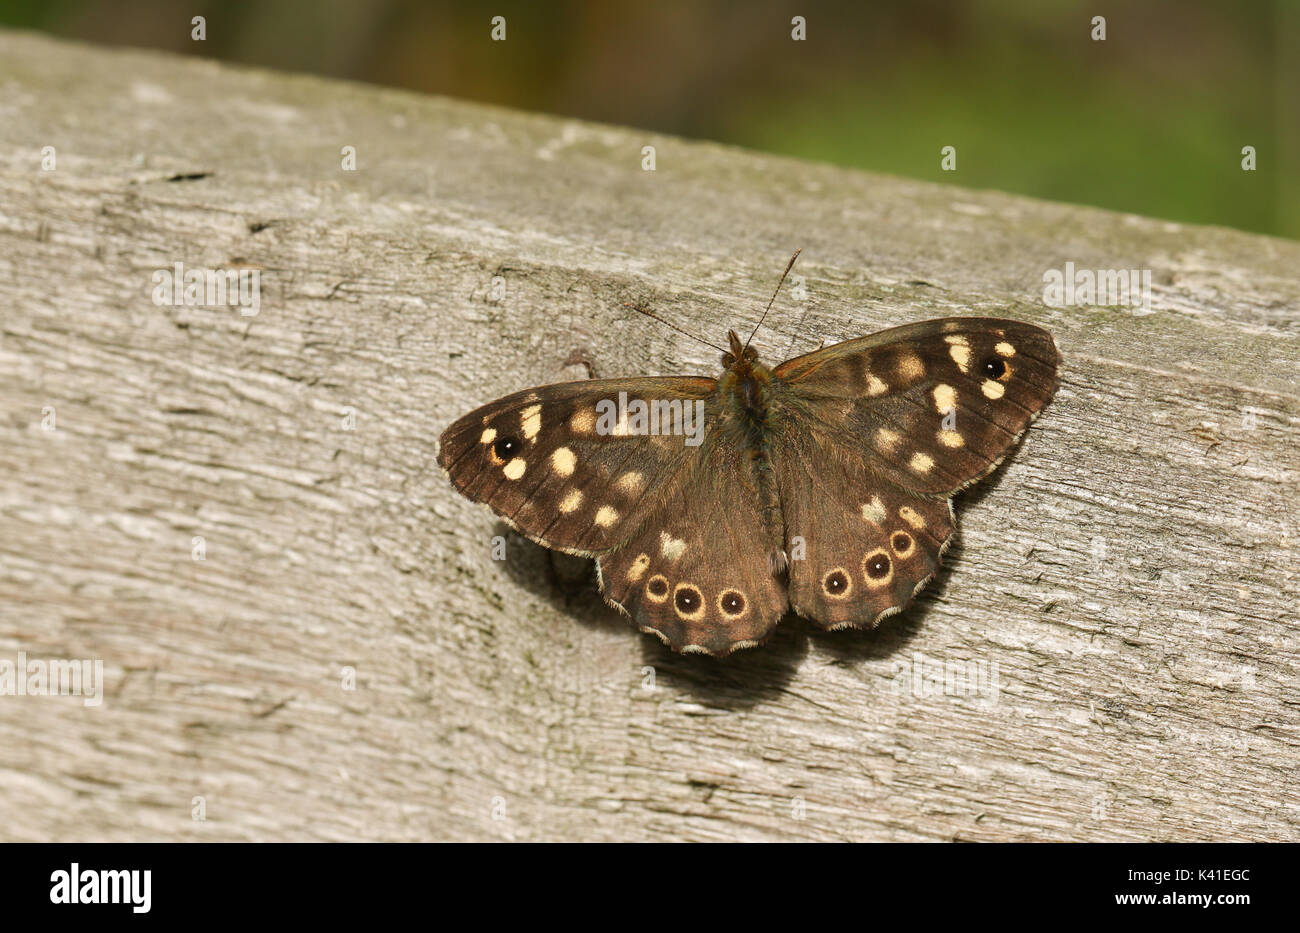 A Speckled Wood Butterfly (Pararge aegeria) perched on a fence. - Stock Image